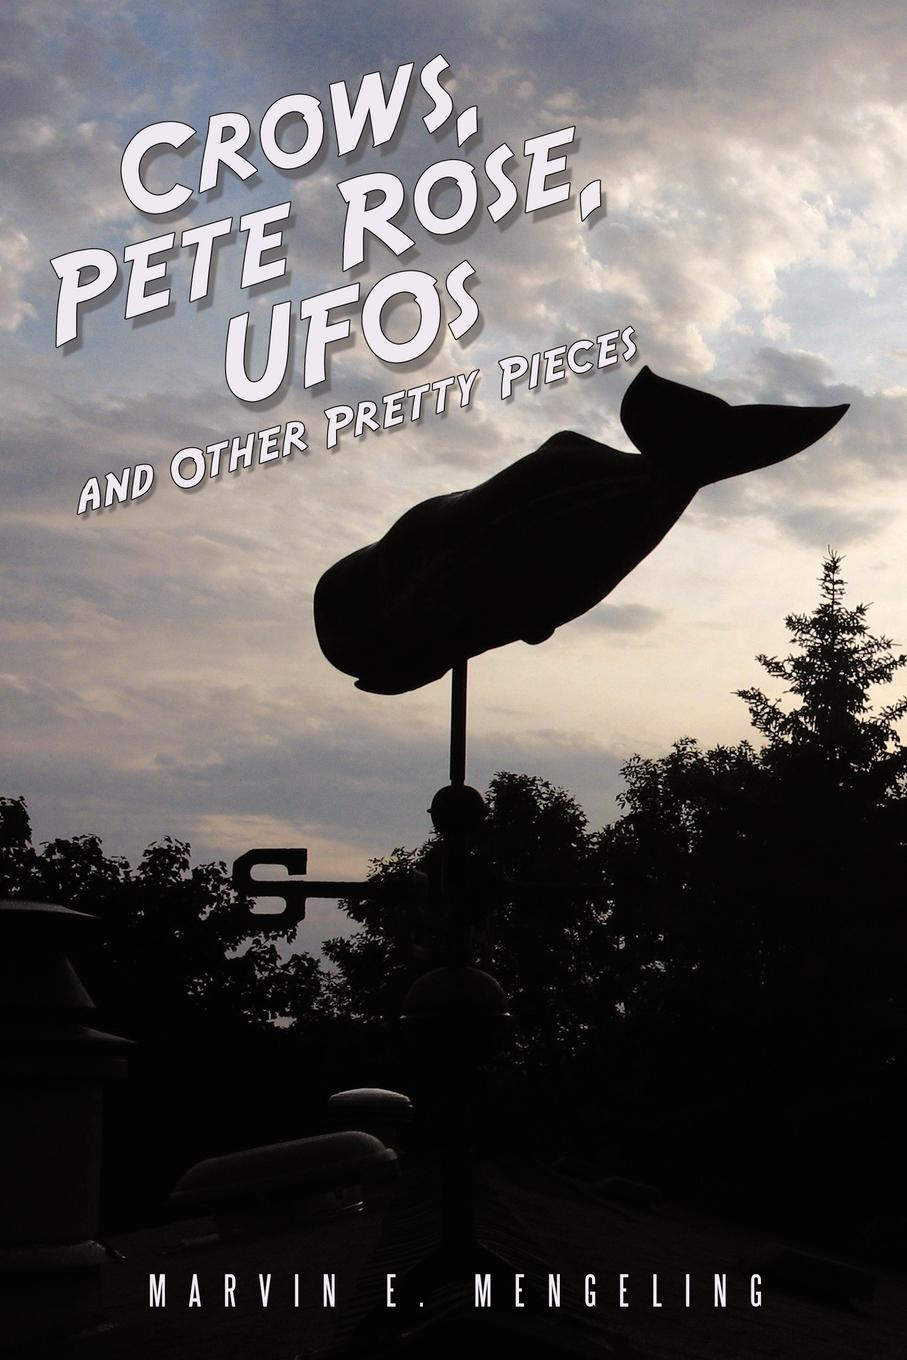 Marvin E. Mengeling Crows, Pete Rose, UFOs. And Other Pretty Pieces недорго, оригинальная цена